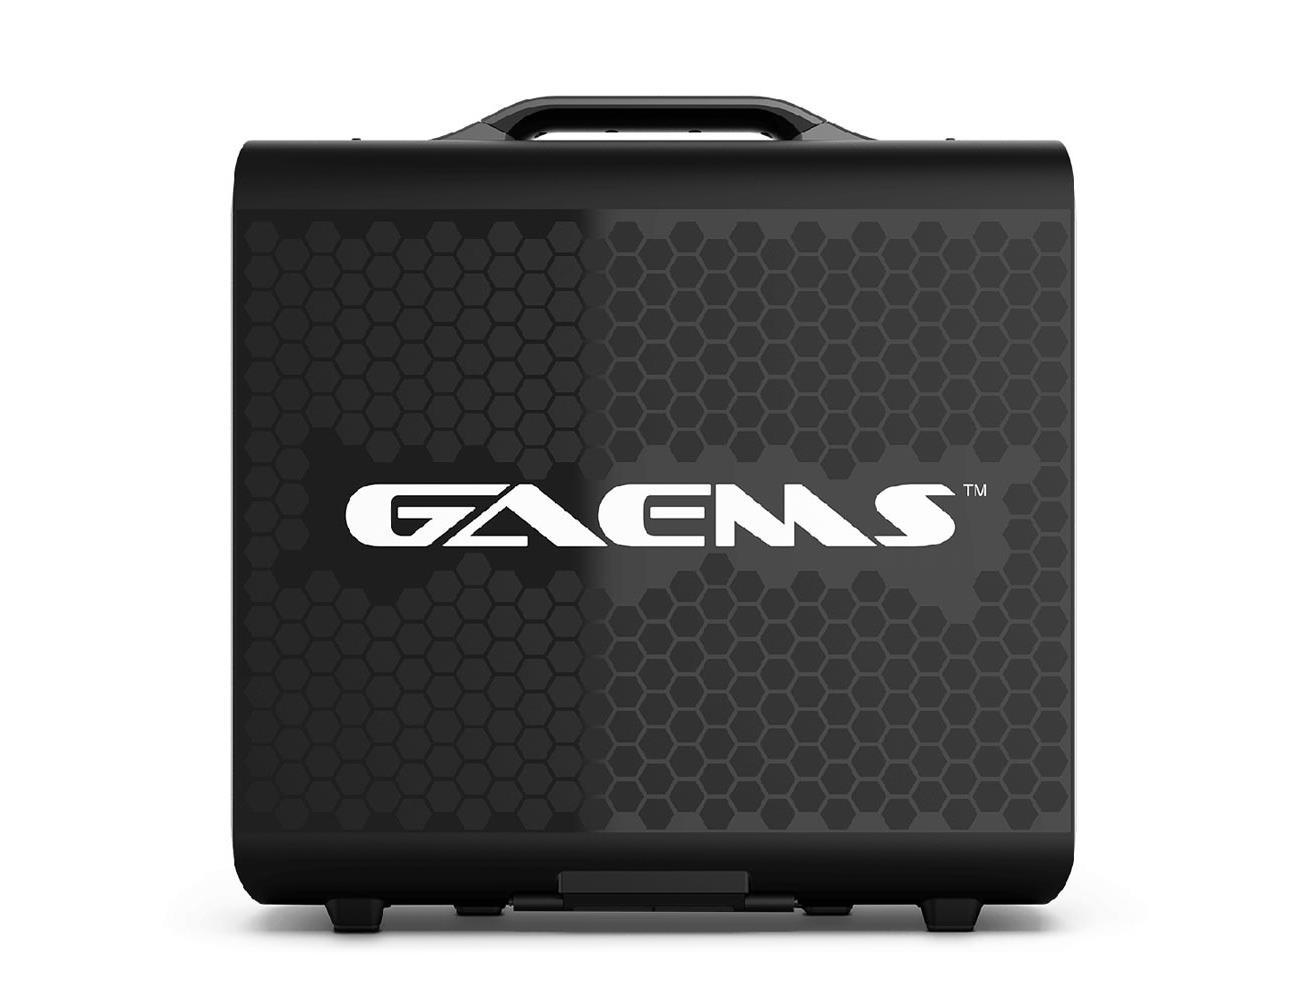 GAEMS G170 Sentinel Pro Xp 1080P Portable Gaming Monitor